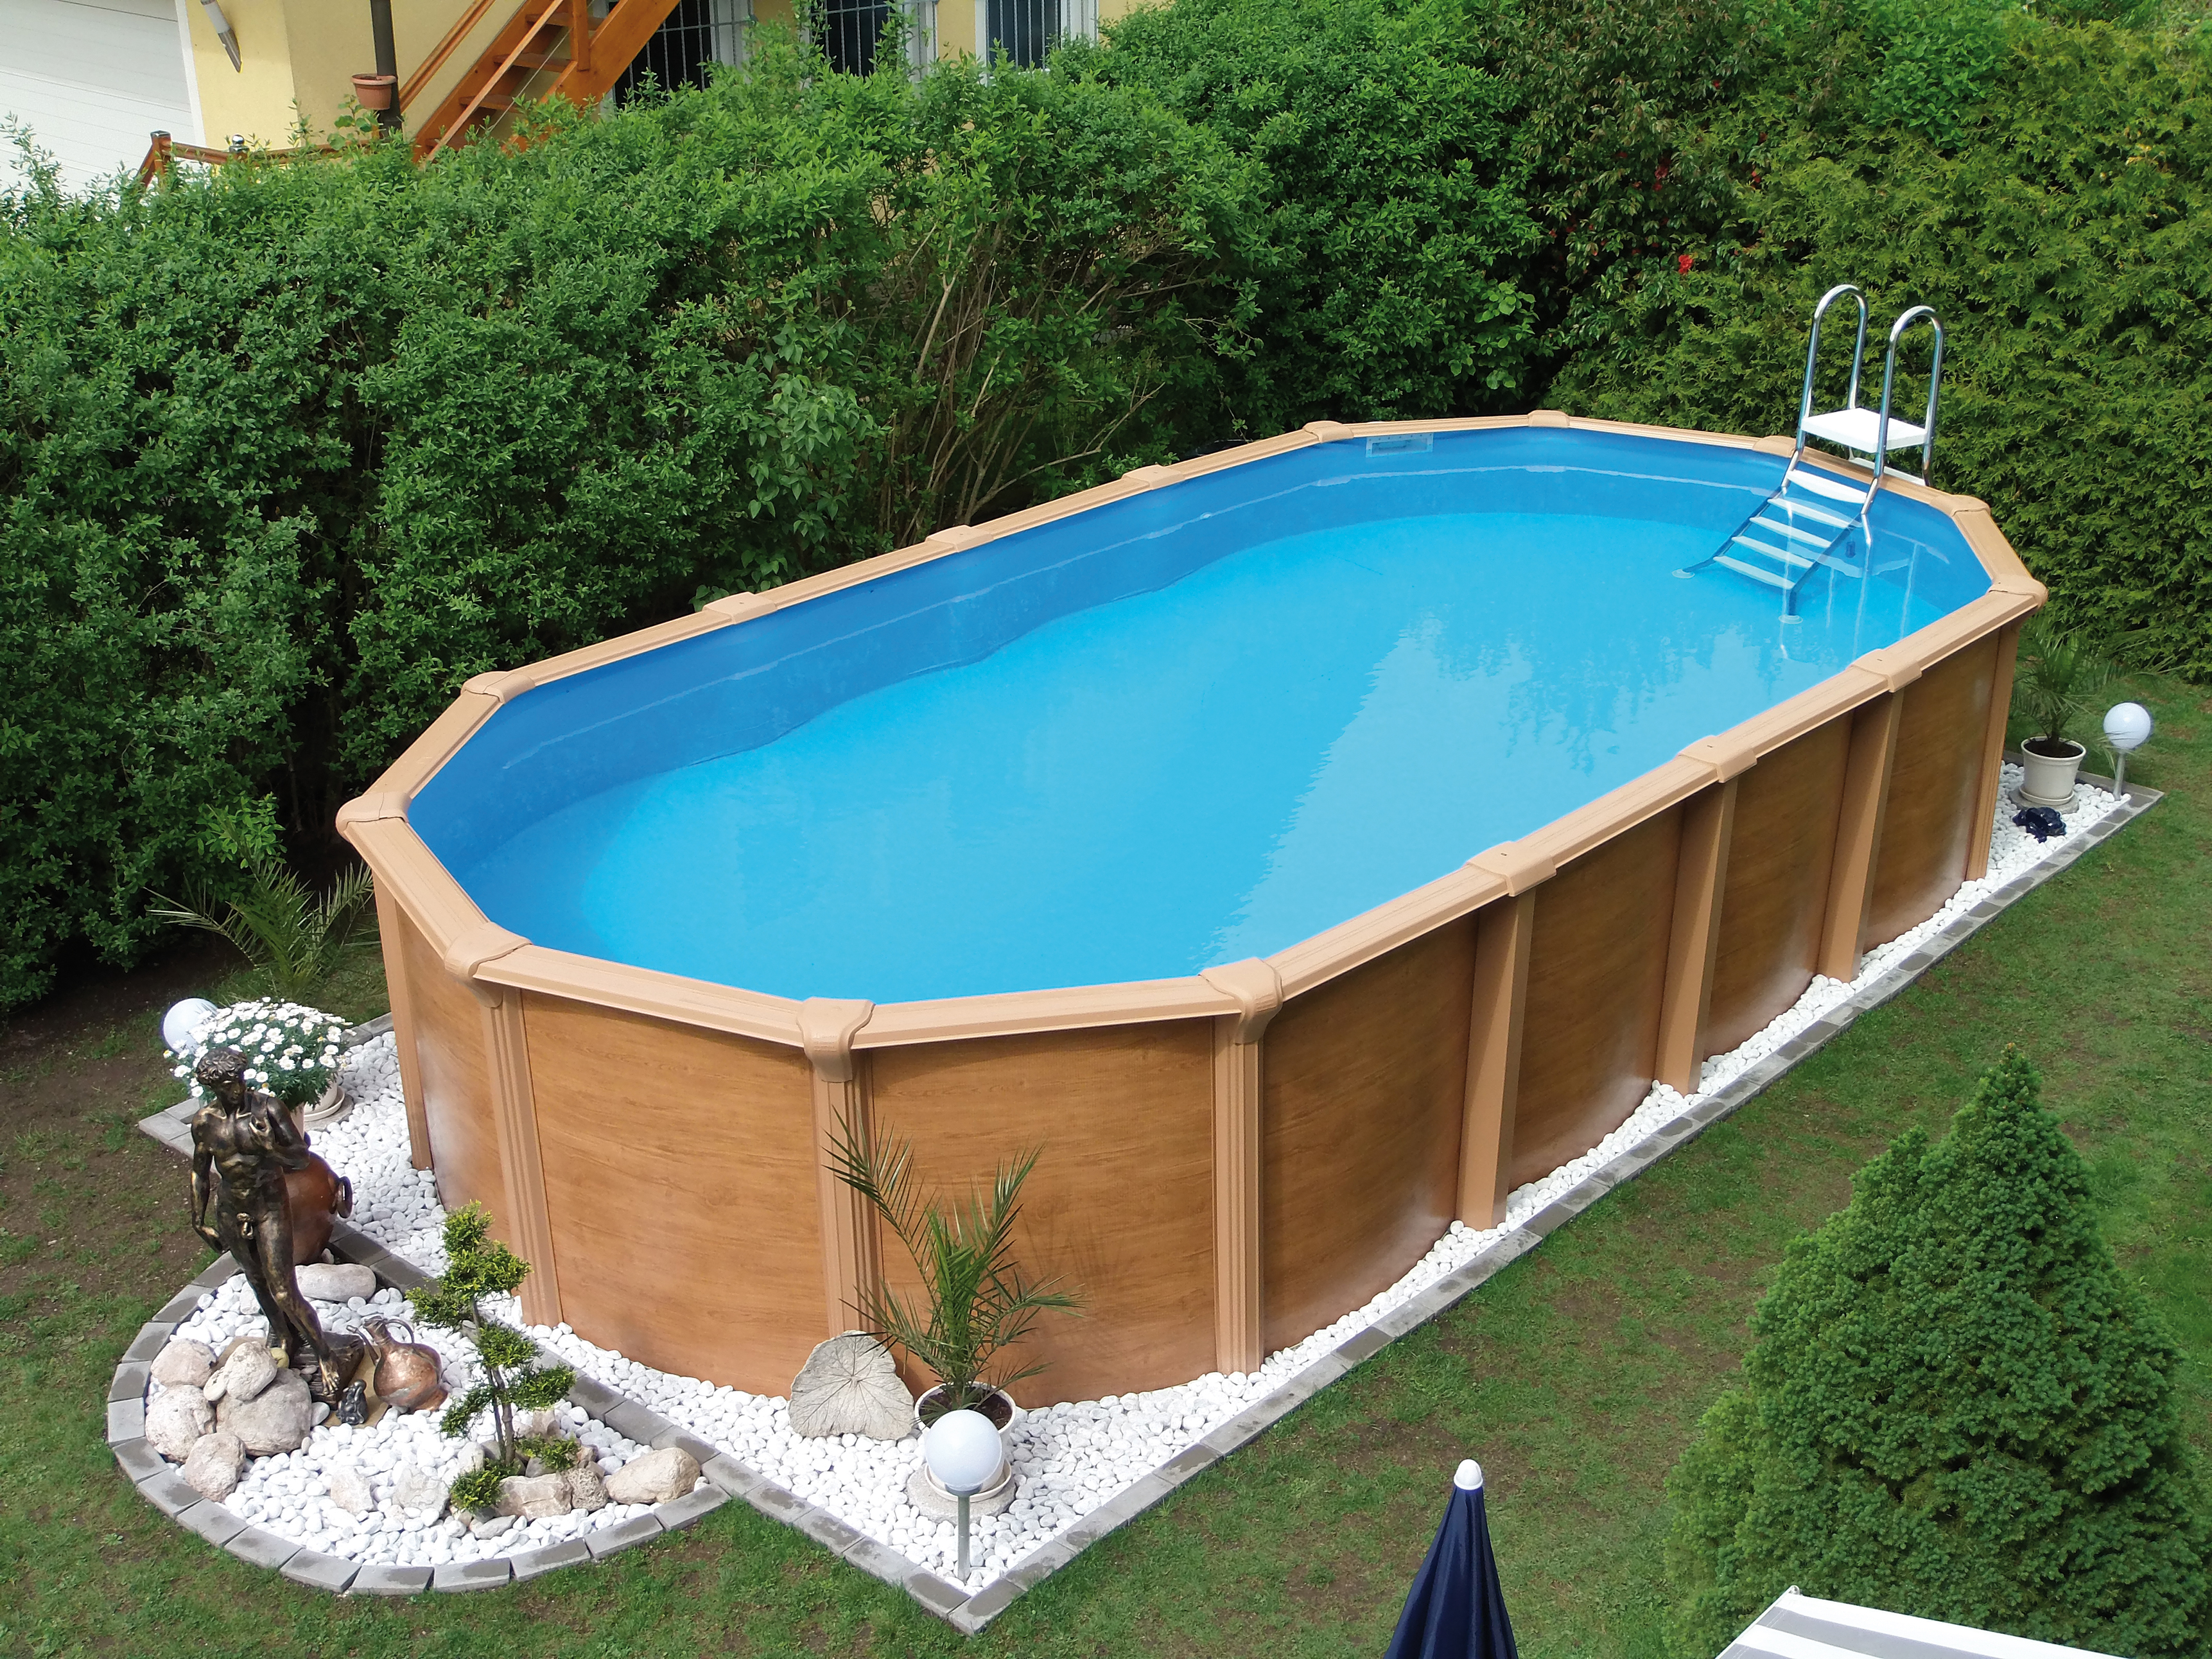 steirerbecken pool supreme clever oval holz optik [6,1 x 3,7 x 1,32